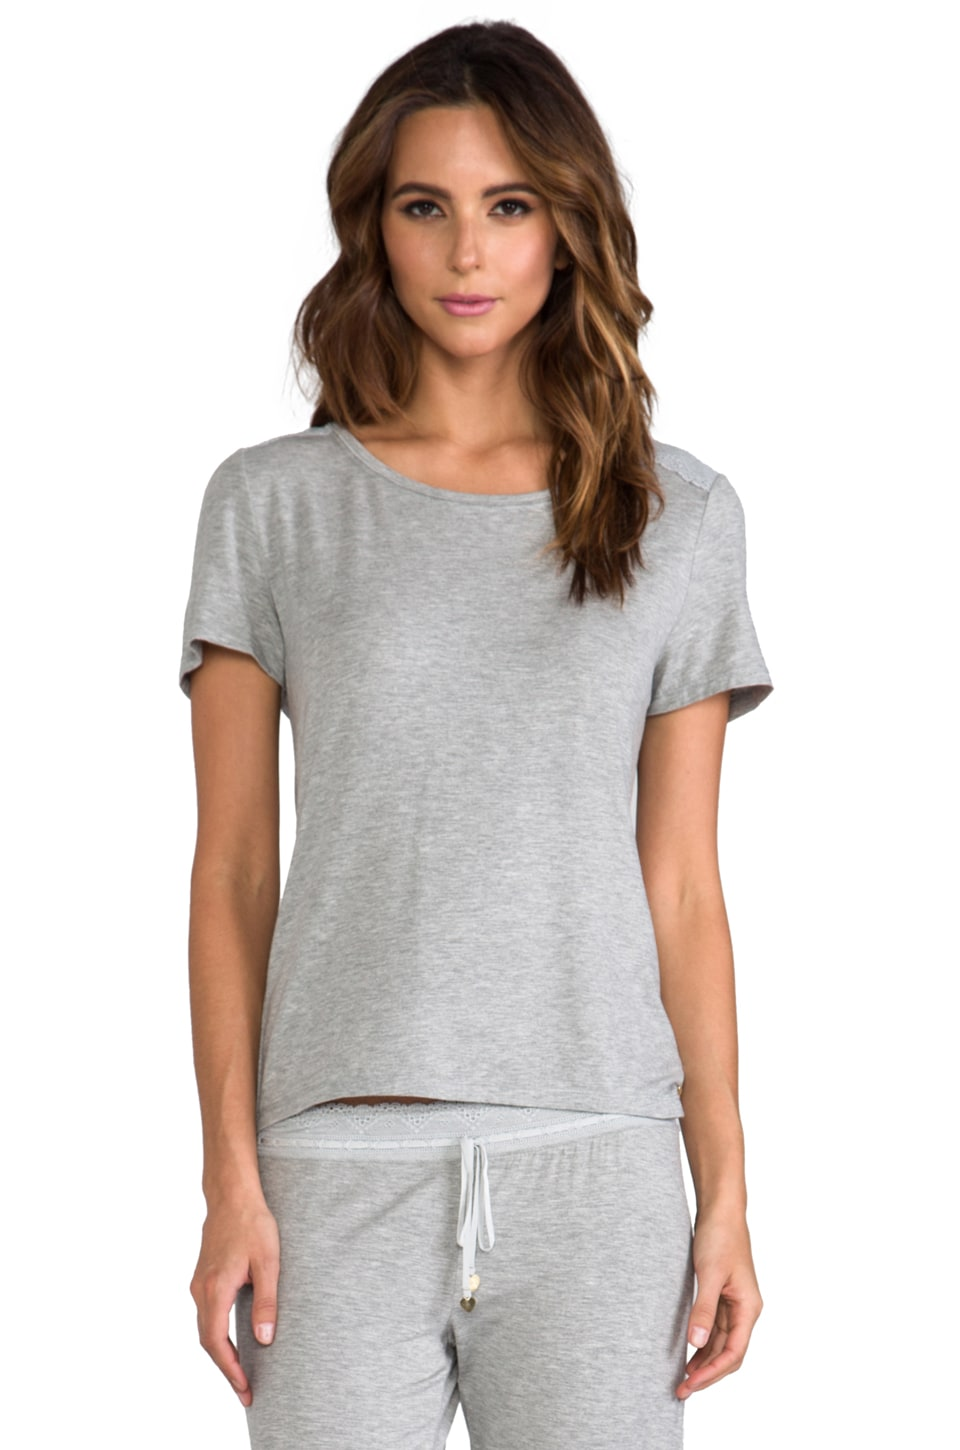 Juicy Couture Sleep Essential Tee in Heather Cozy